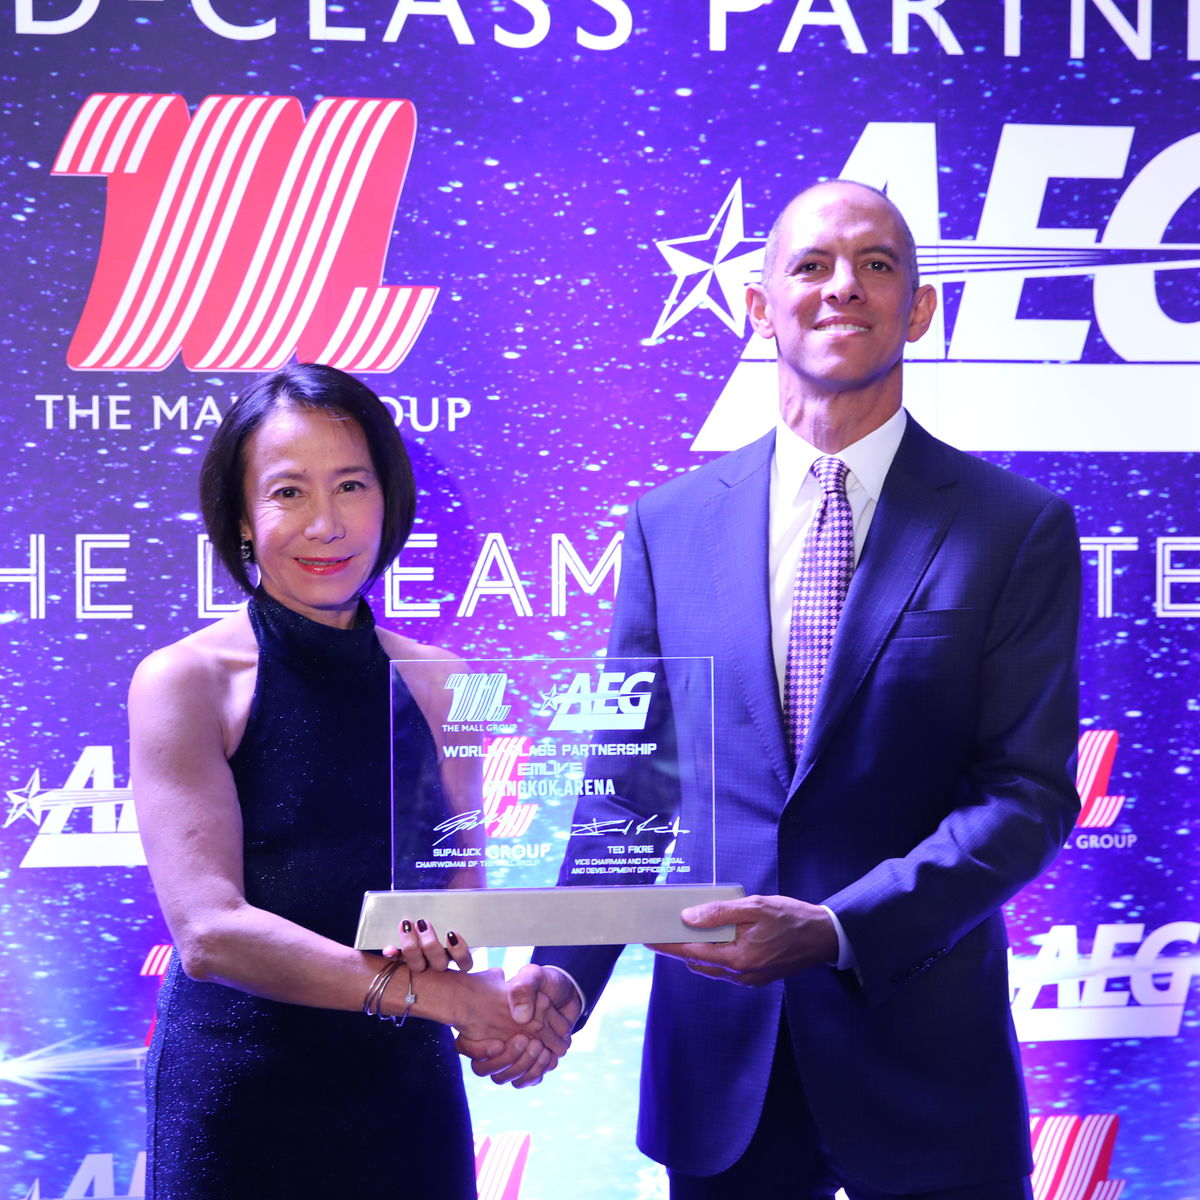 Supaluck Umpujh, Chairwoman of The Mall Group shakes hands with Ted Fikre, Vice Chairman and Chief Legal and Development Officer, AEG to celebrate the new partnership between both companies.